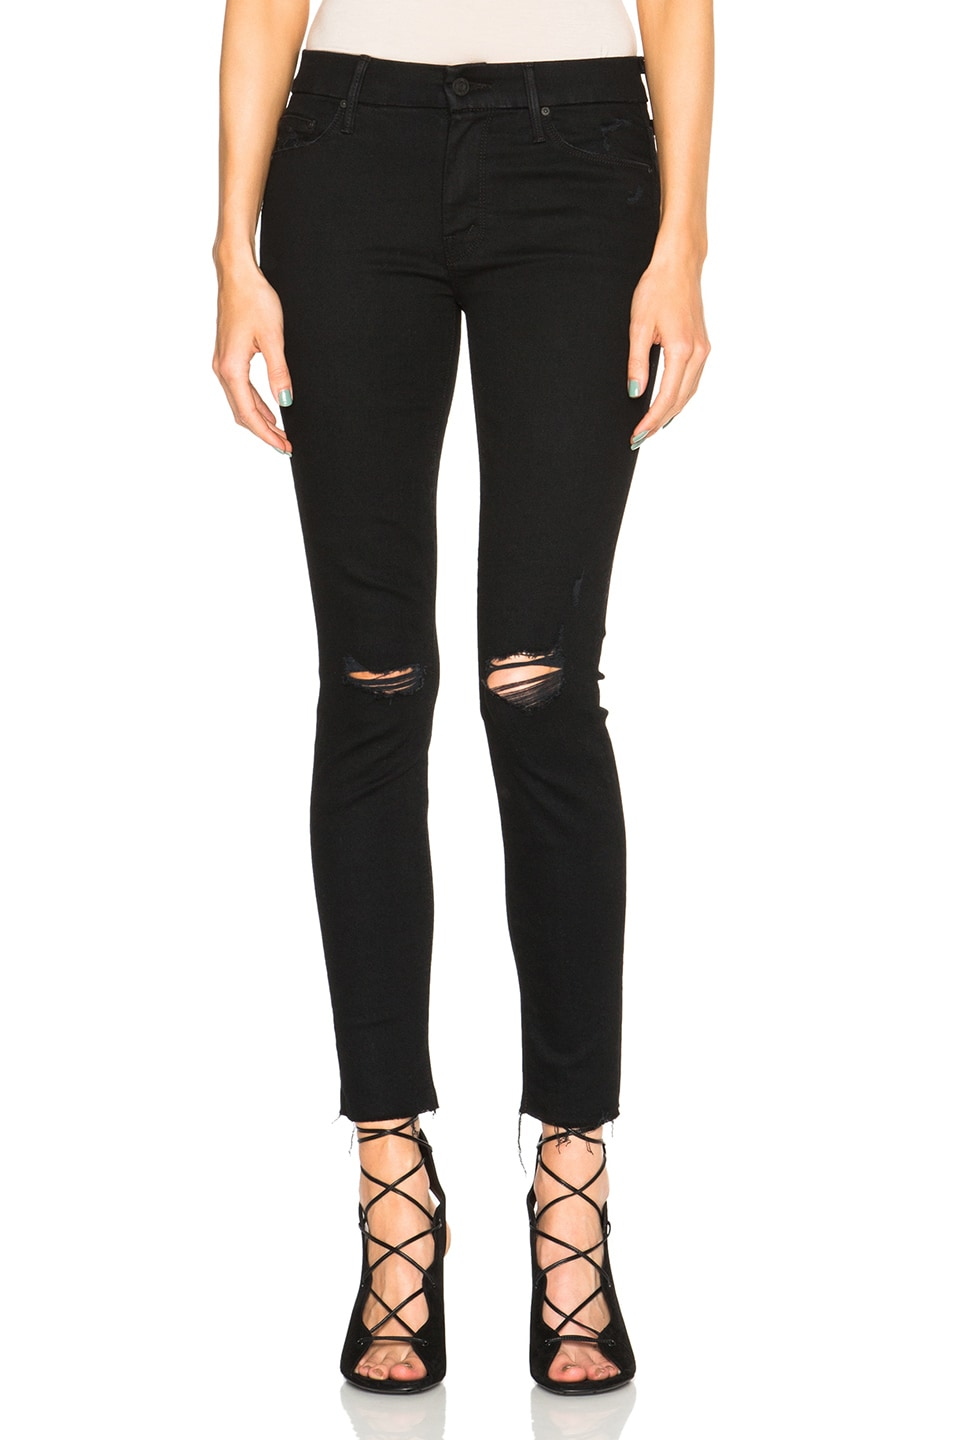 'The Looker' Frayed Ankle Skinny Jeans (Guilty As Sin) in Black